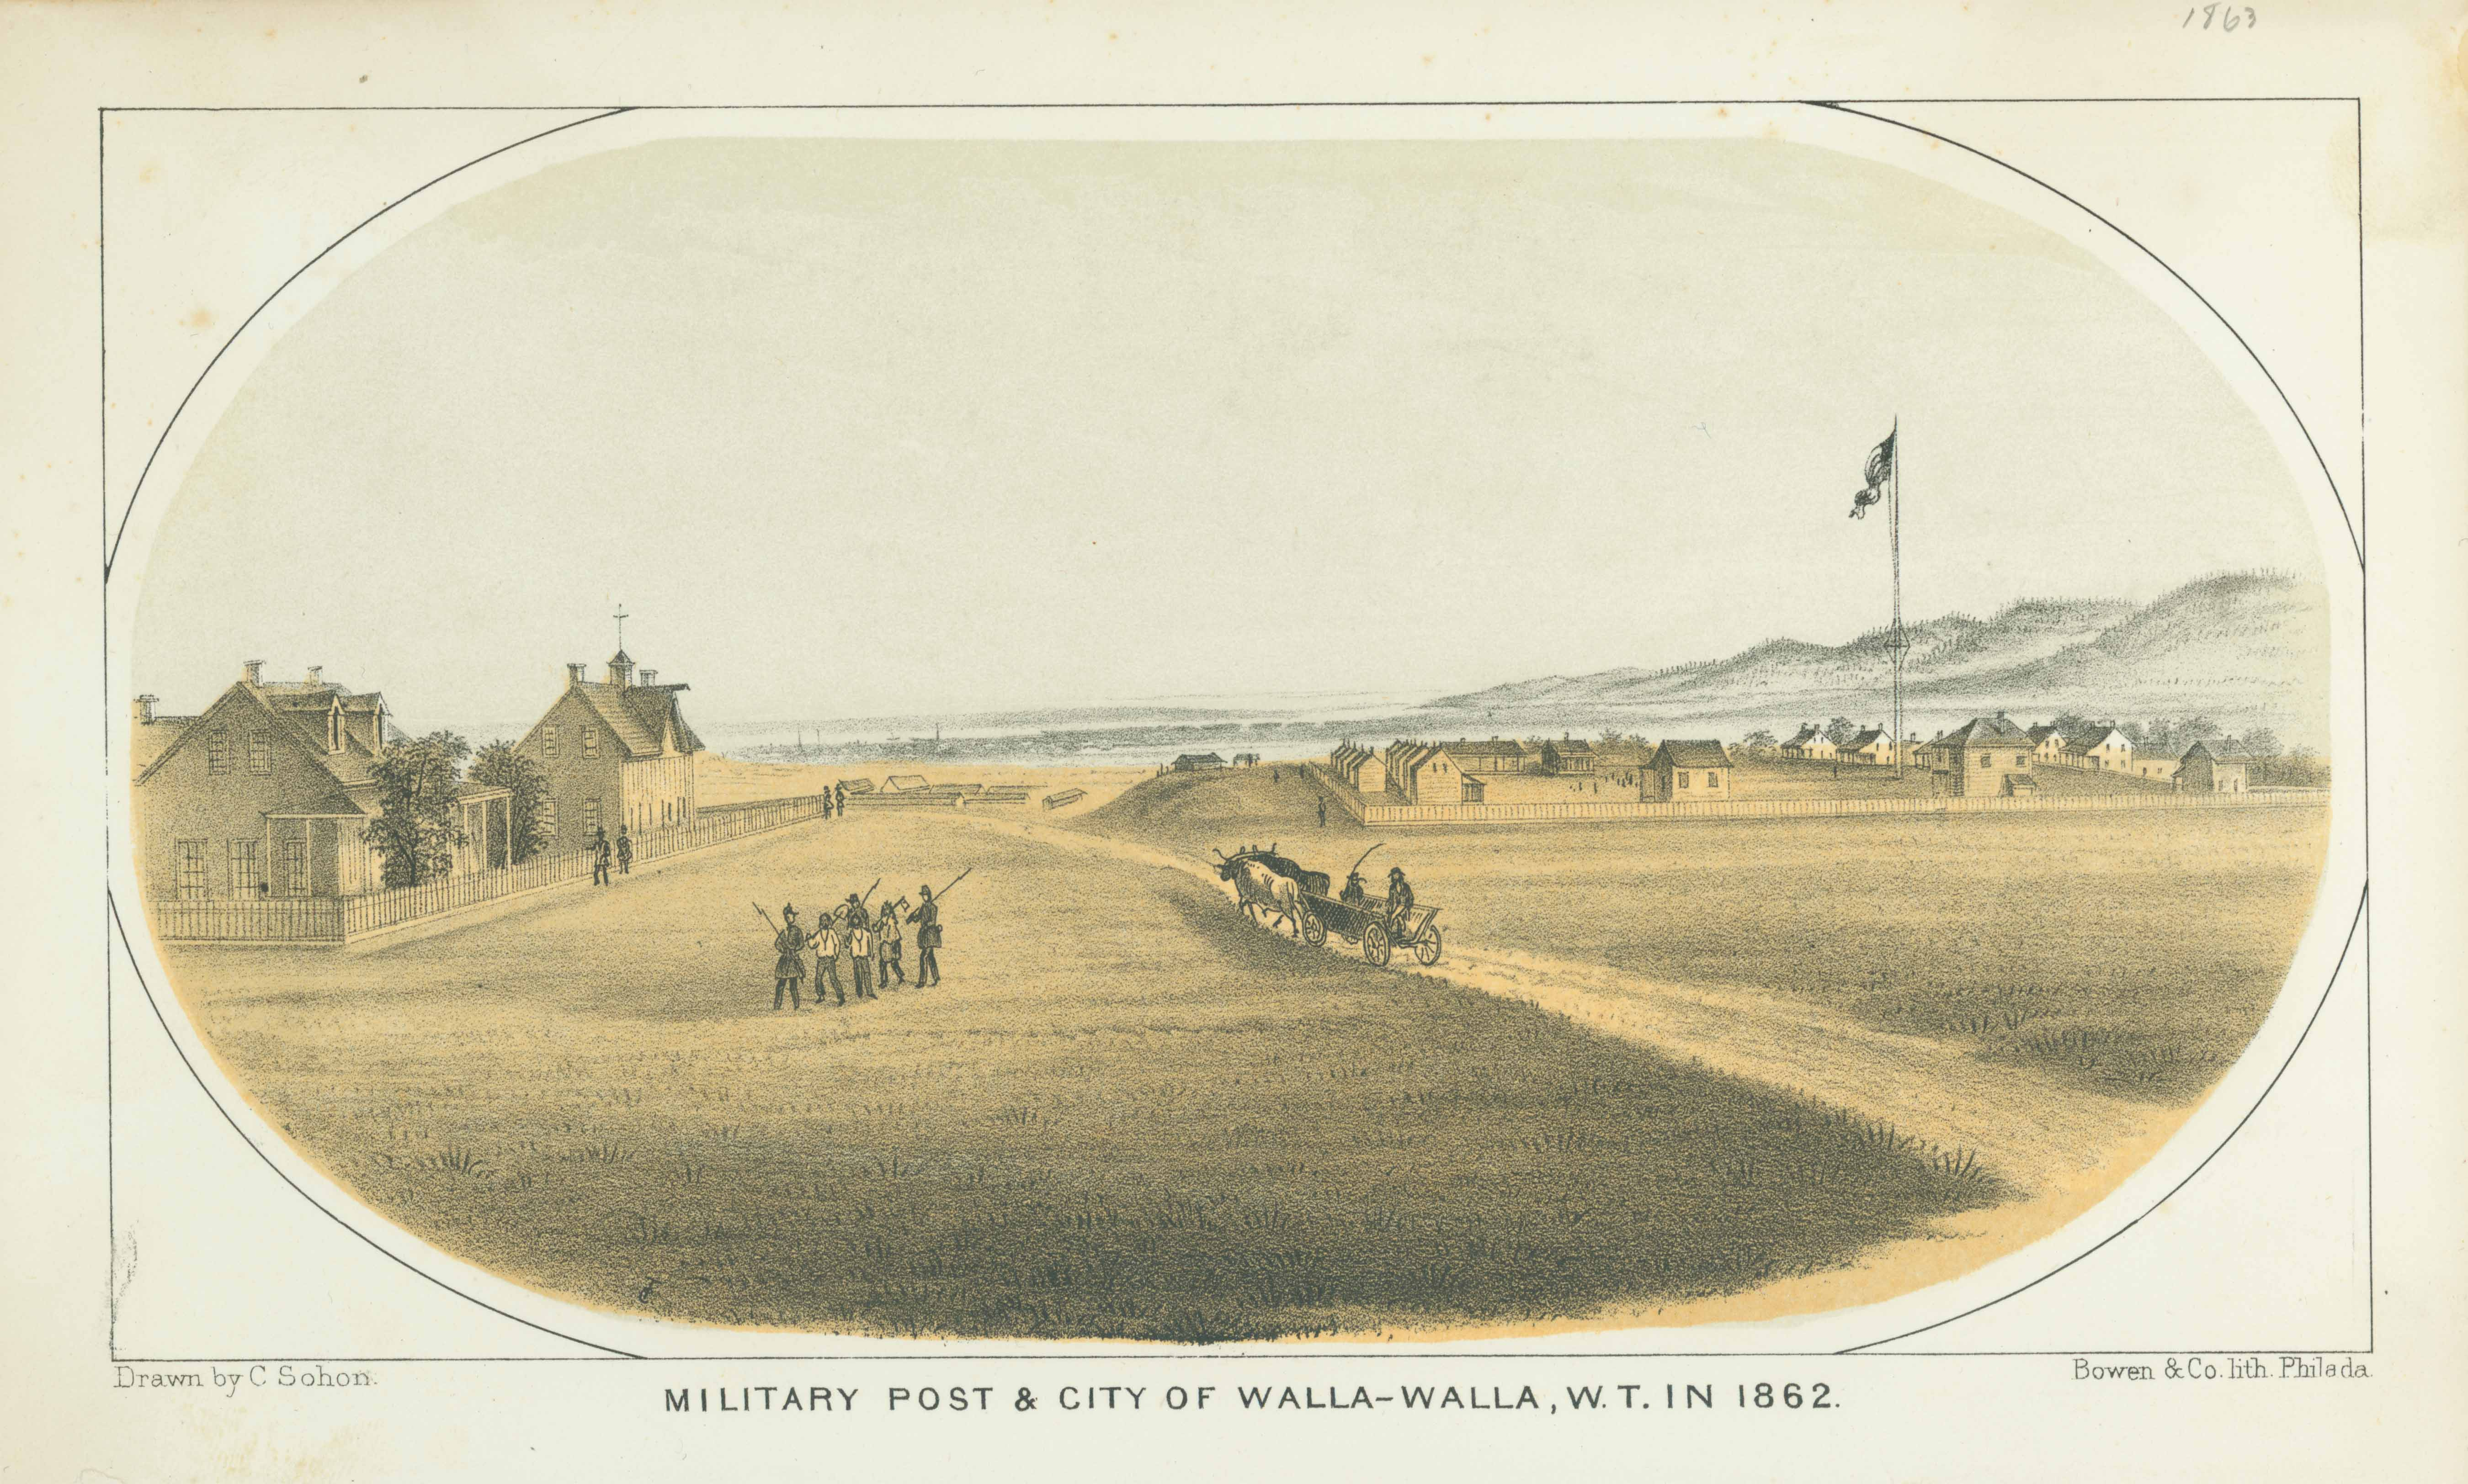 Military Post and City of Walla Walla, W.T. in 1862